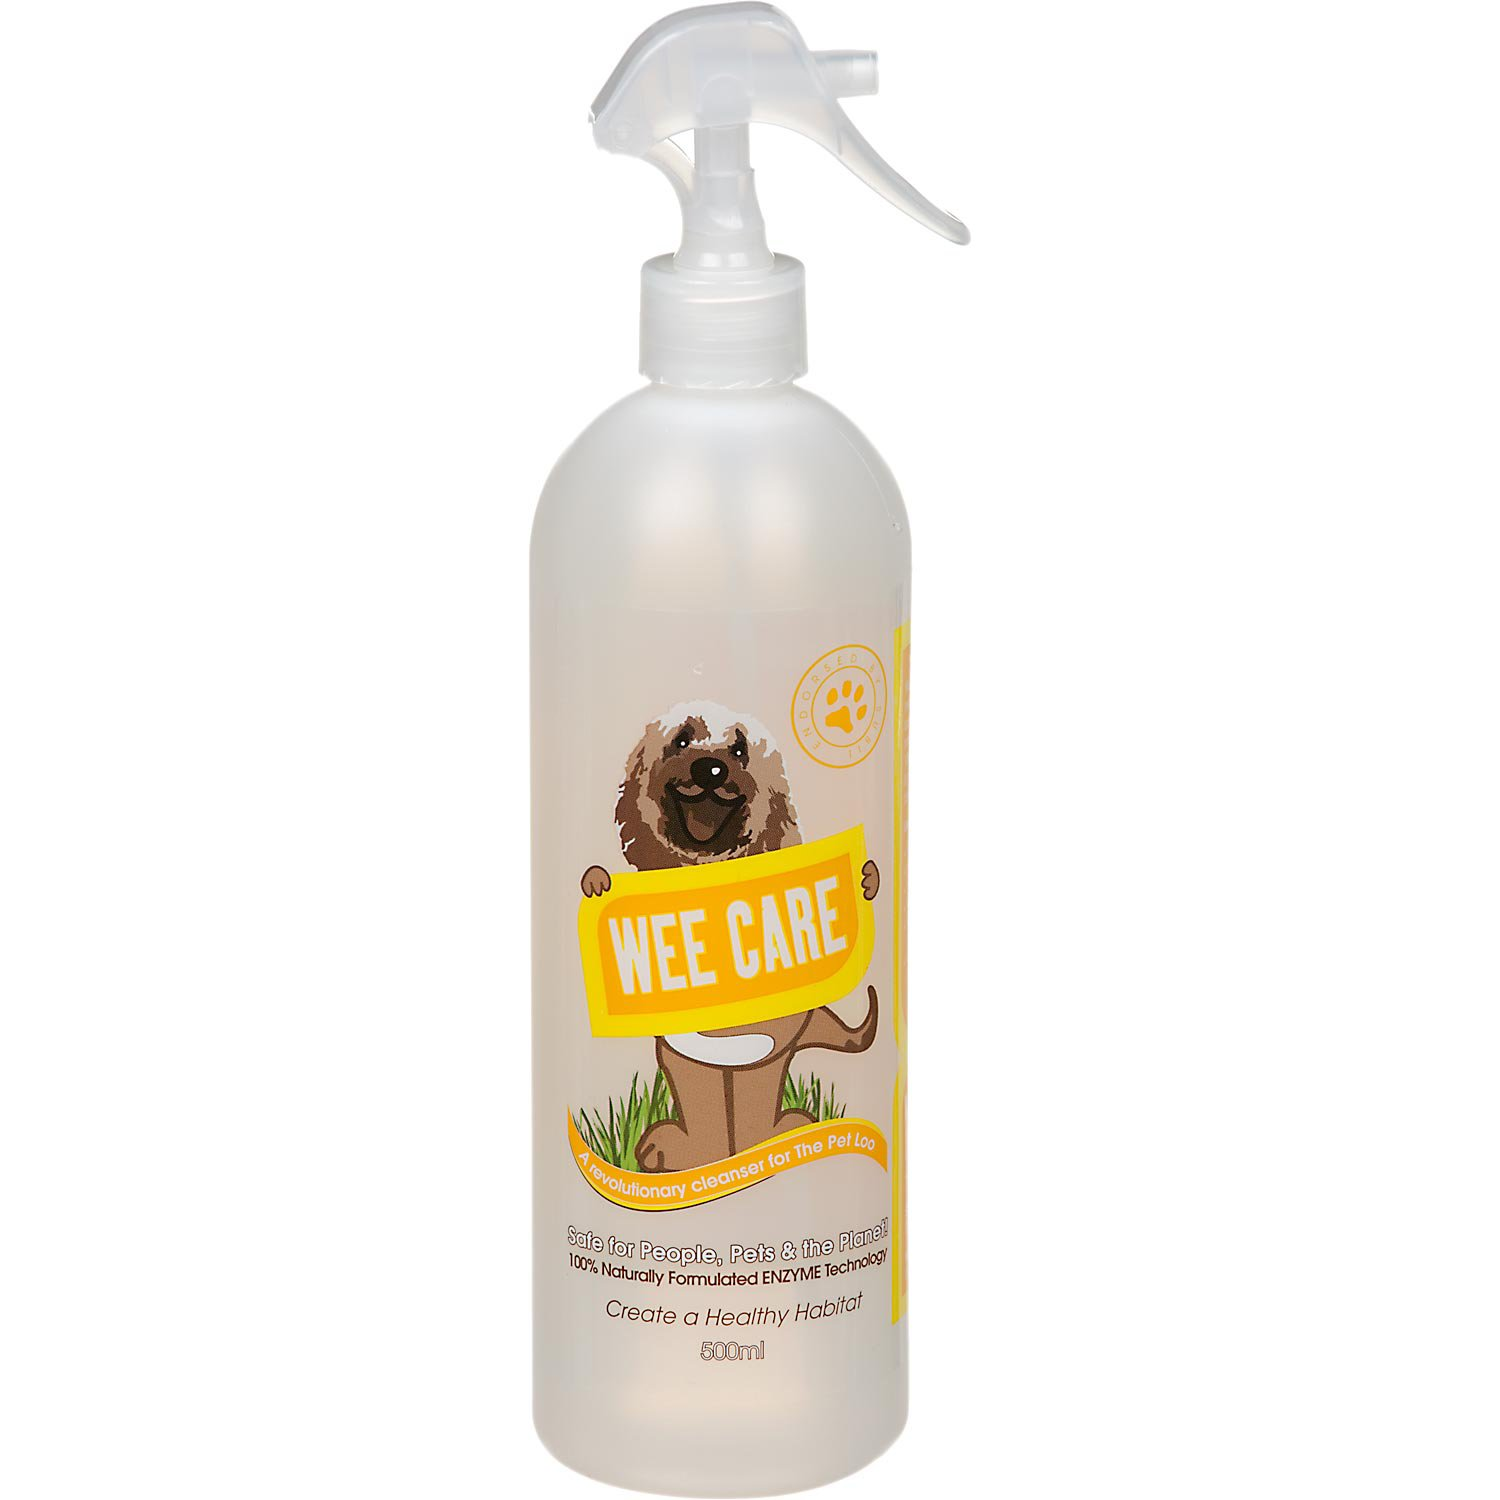 Pet Loo Wee Care Pet Loo & Toilet Area Cleaner for Pets